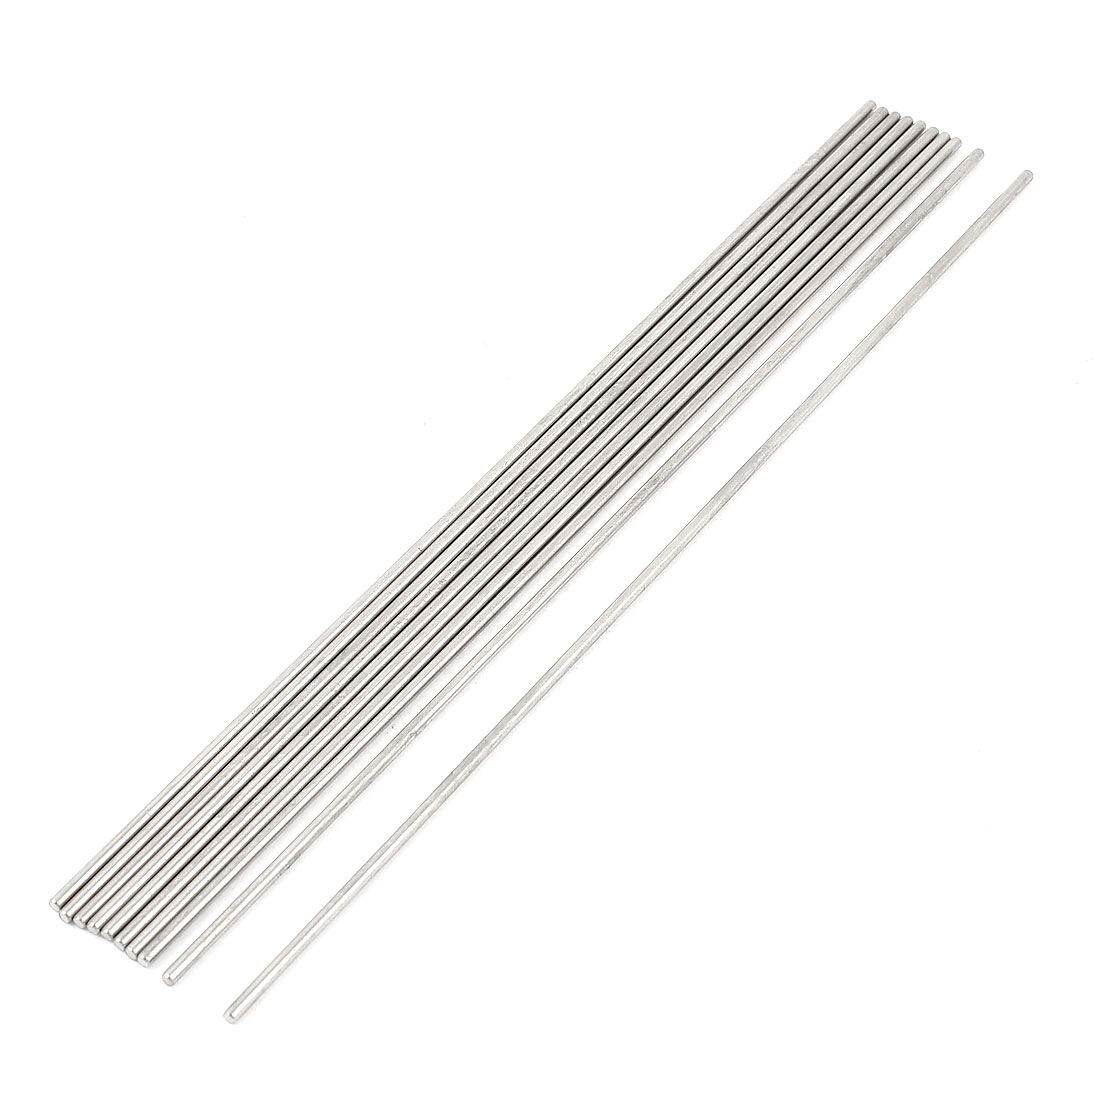 10 Pcs 2mm Dia 190mm Length Stainless Steel Solid Round Rod Bar for DIY RC Car